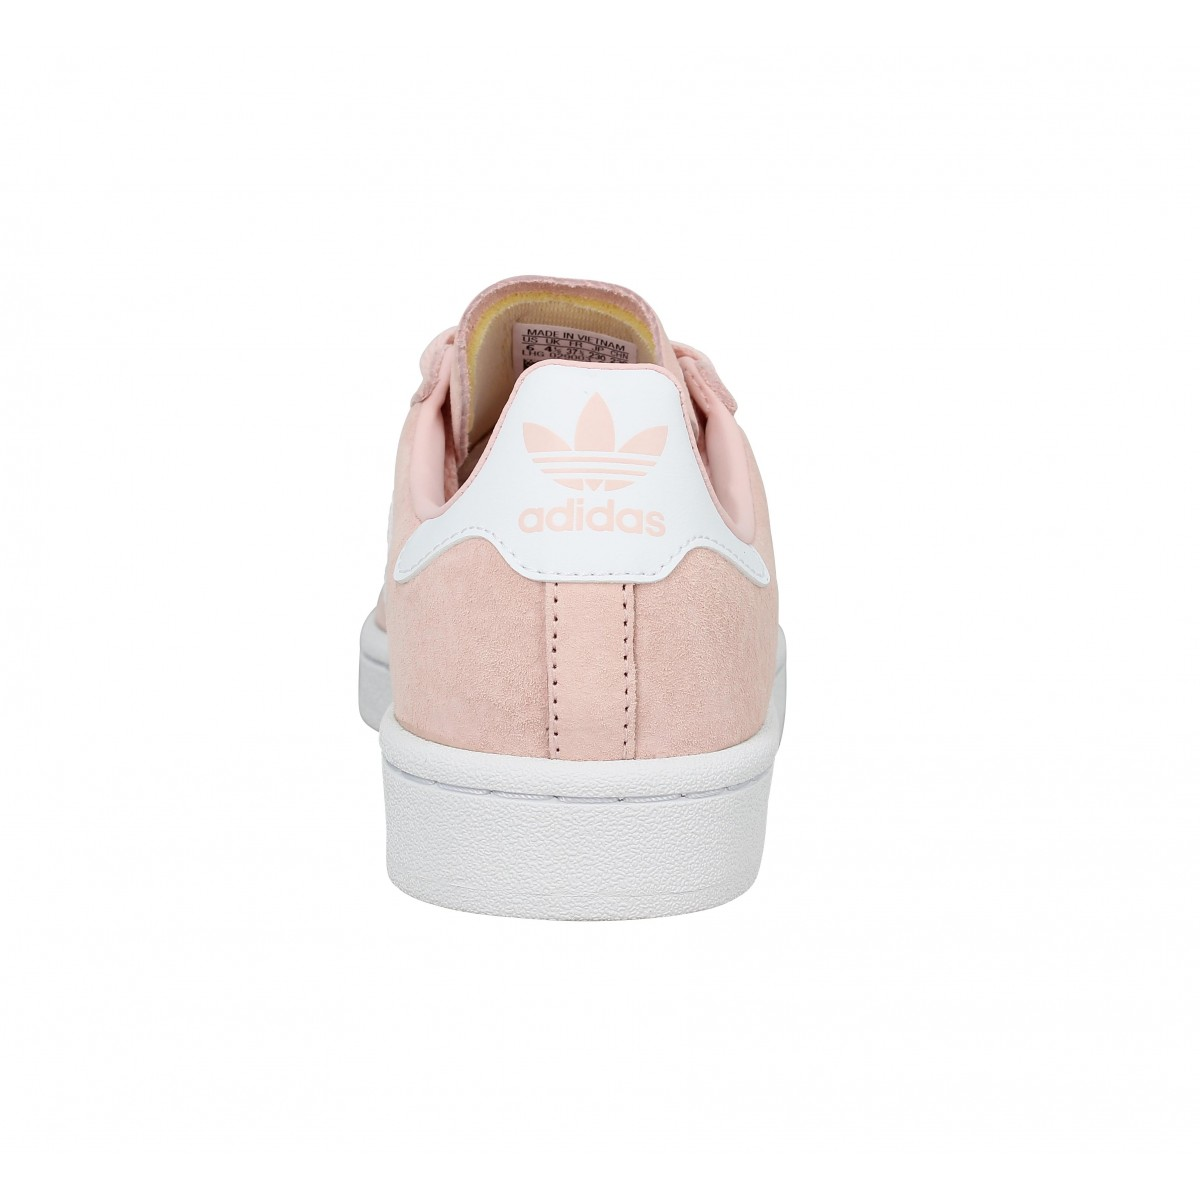 Chaussures Adidas campus velours femme rose femme | Fanny